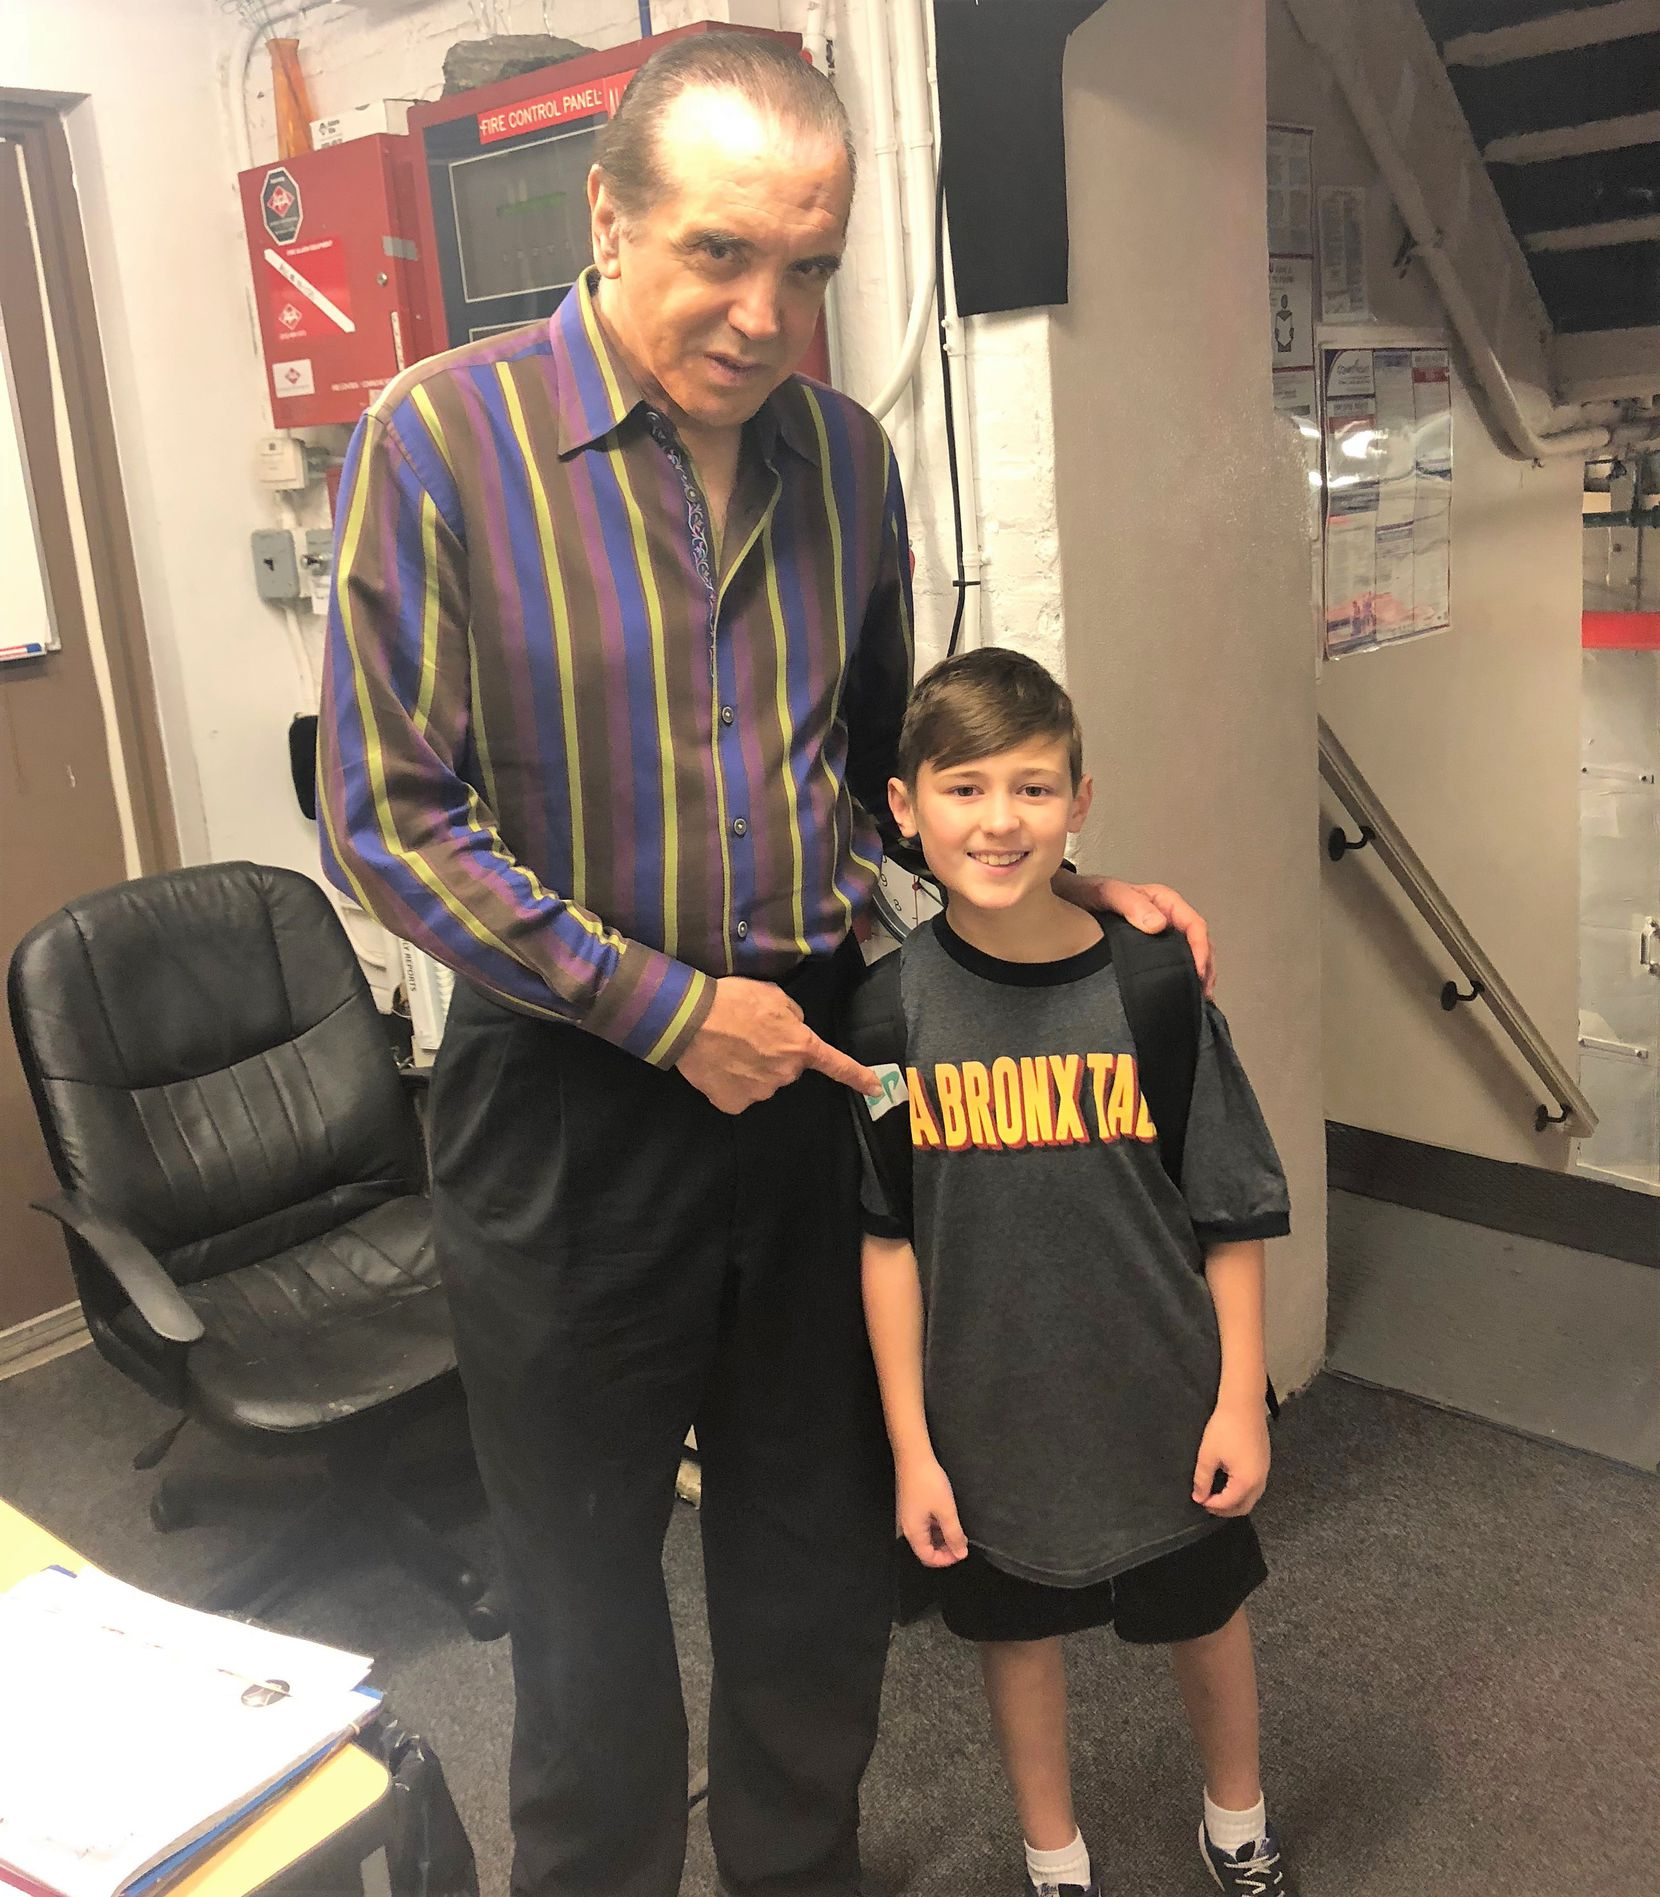 Chazz Palminteri with Frankie Leoni backstage at A Bronx Tale at the Longacre Theater in New York City.